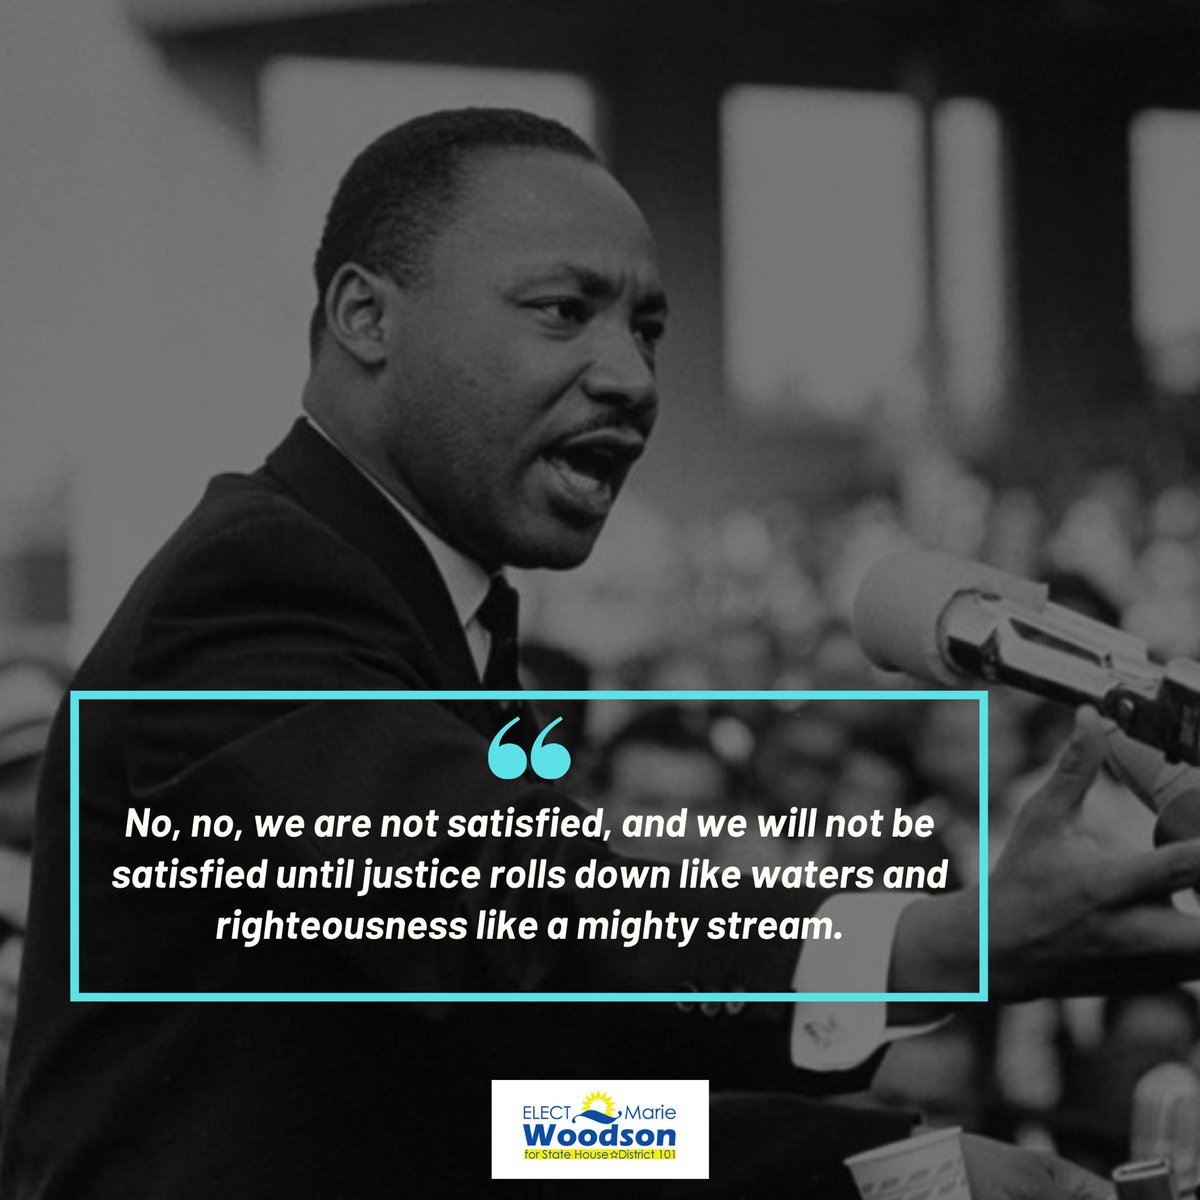 A leader who led an entire nation into peaceful protests, a leader whose voice inspired a generation to act and to this day, HIS voice continues to have a tremendous impact. ⁣ ⁣ #TeamWoodson #CivilRights